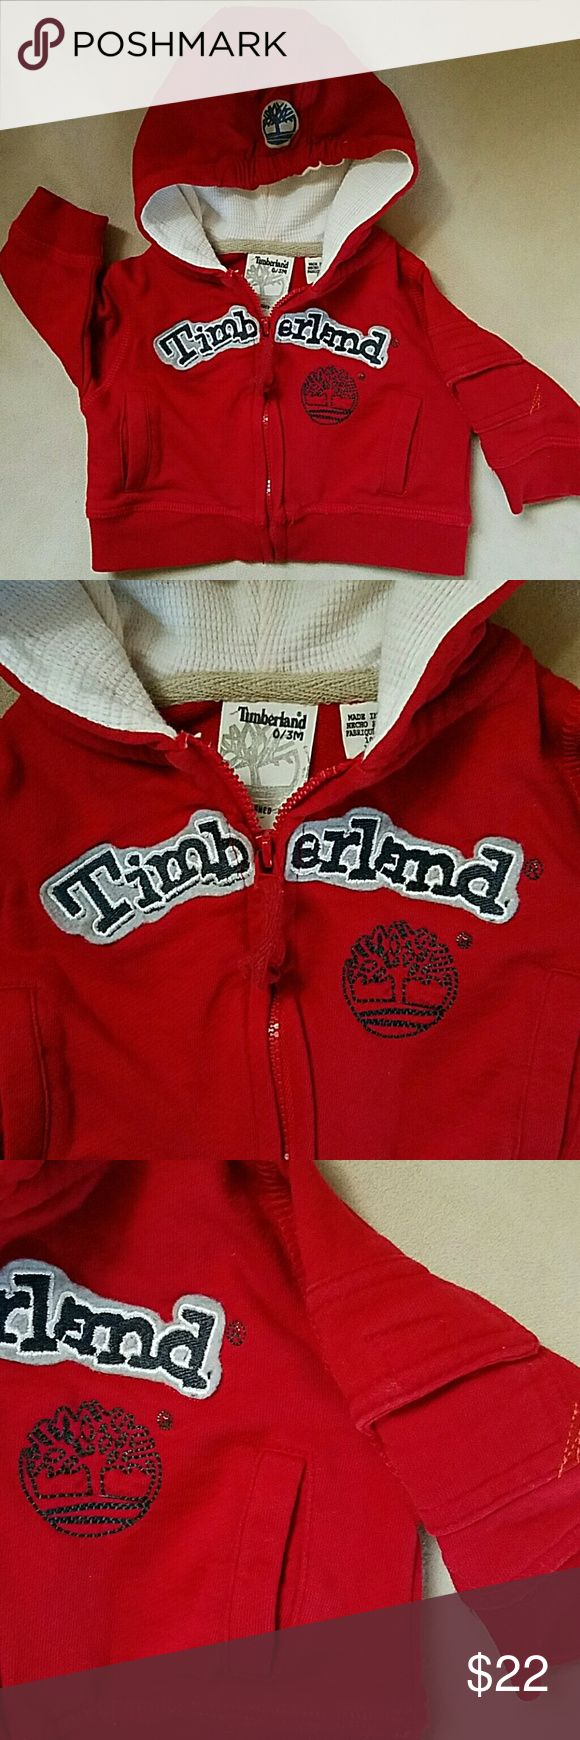 Timberland Hoodie This is so stinkin cute! Feel free to ask me any questions or make an offer. Timberland Shirts & Tops Sweatshirts & Hoodies